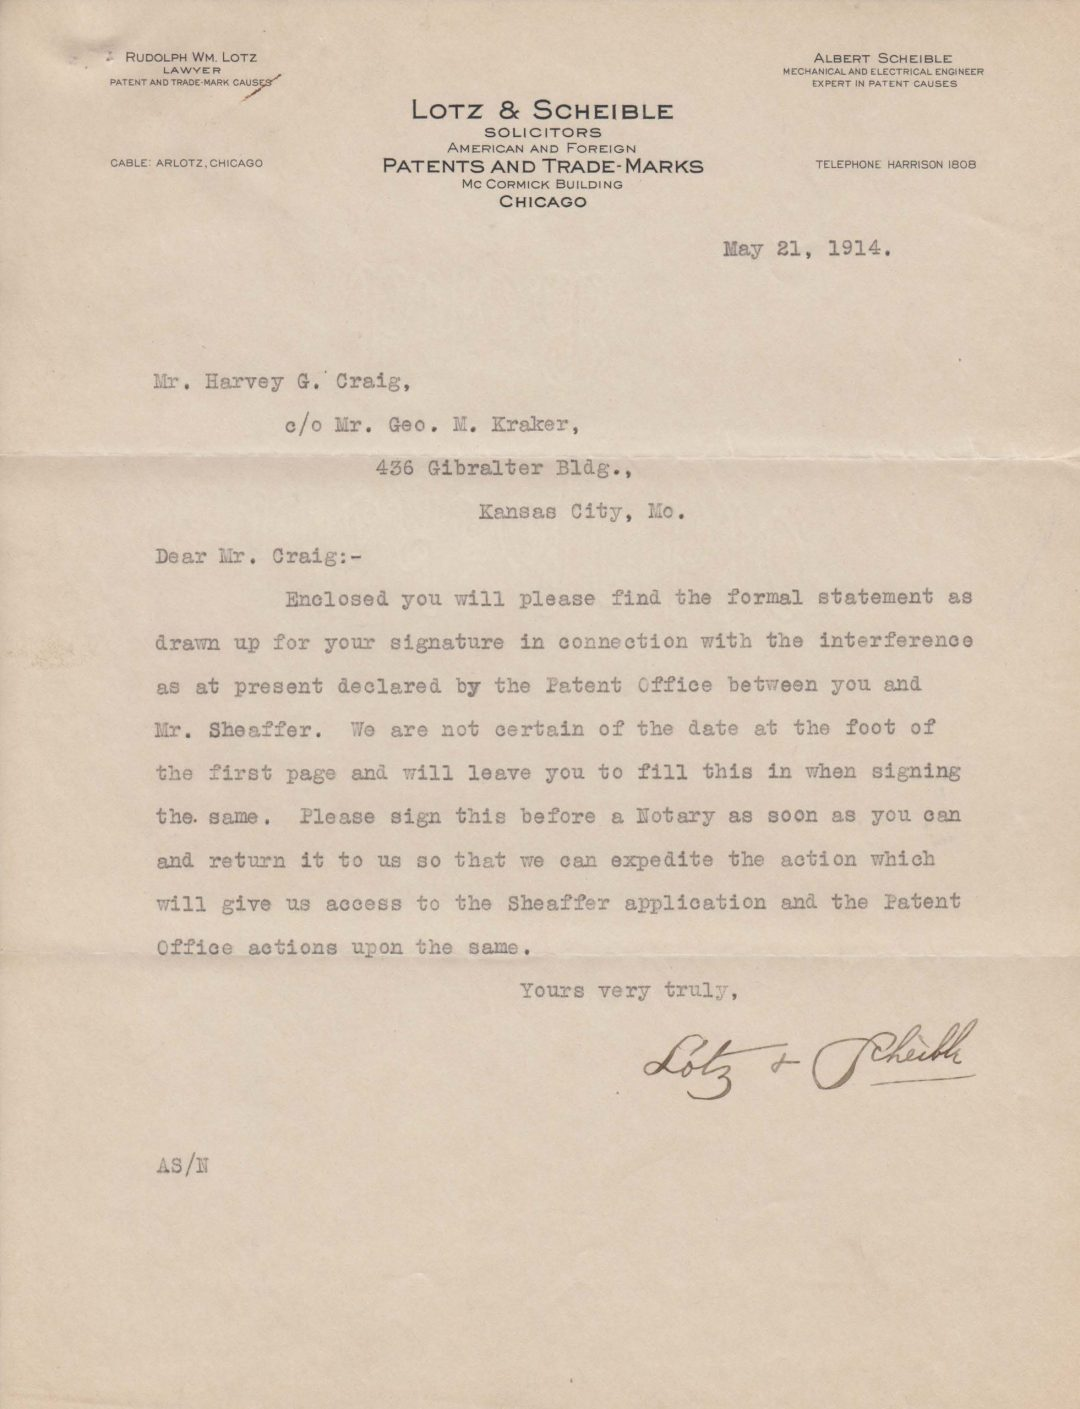 Letter to Harvey Craig 1914-05-21